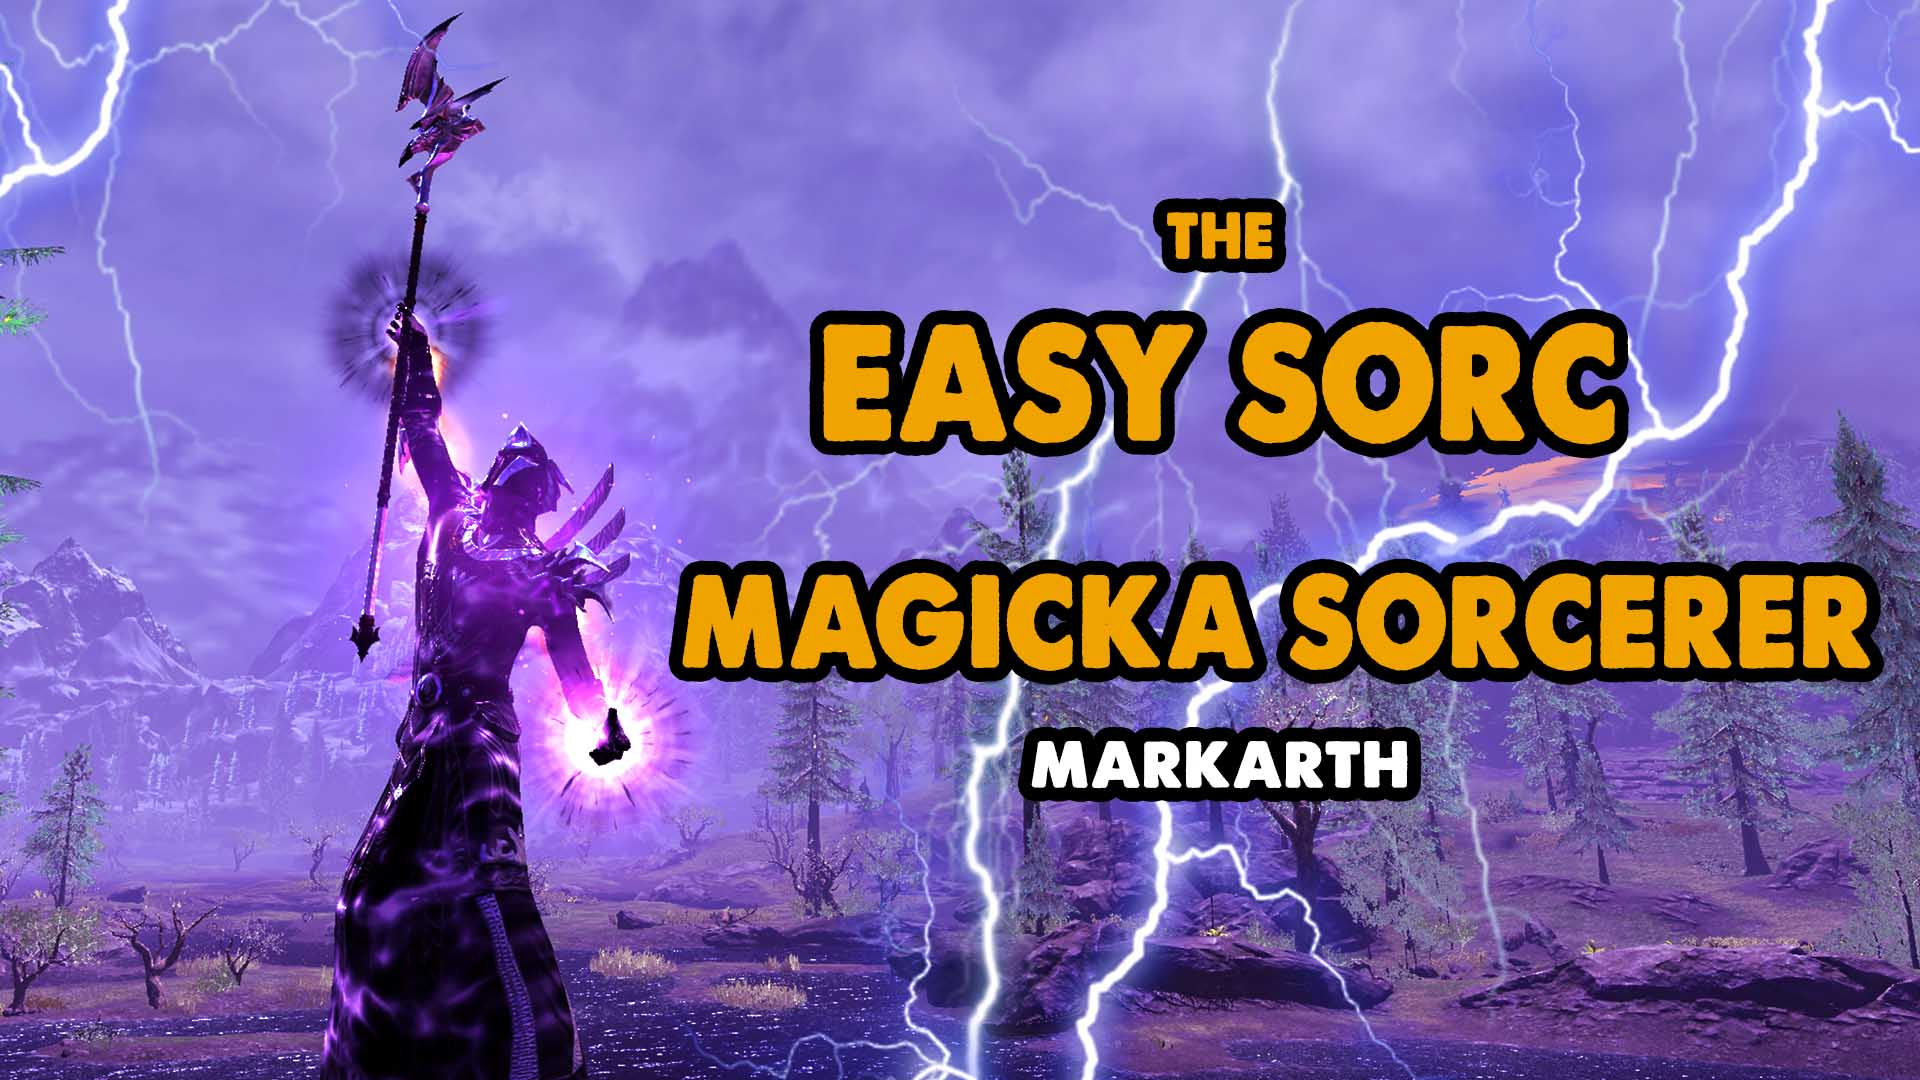 eso, markarth, sorc, sorcerer, best build, solo build, easy sorcerer, ez rotation, ez build easy mode sorcerer, elder scrolls online socrerer build, easy sorc op, best sorcerer in eso, best build in eso, best solo build in eso